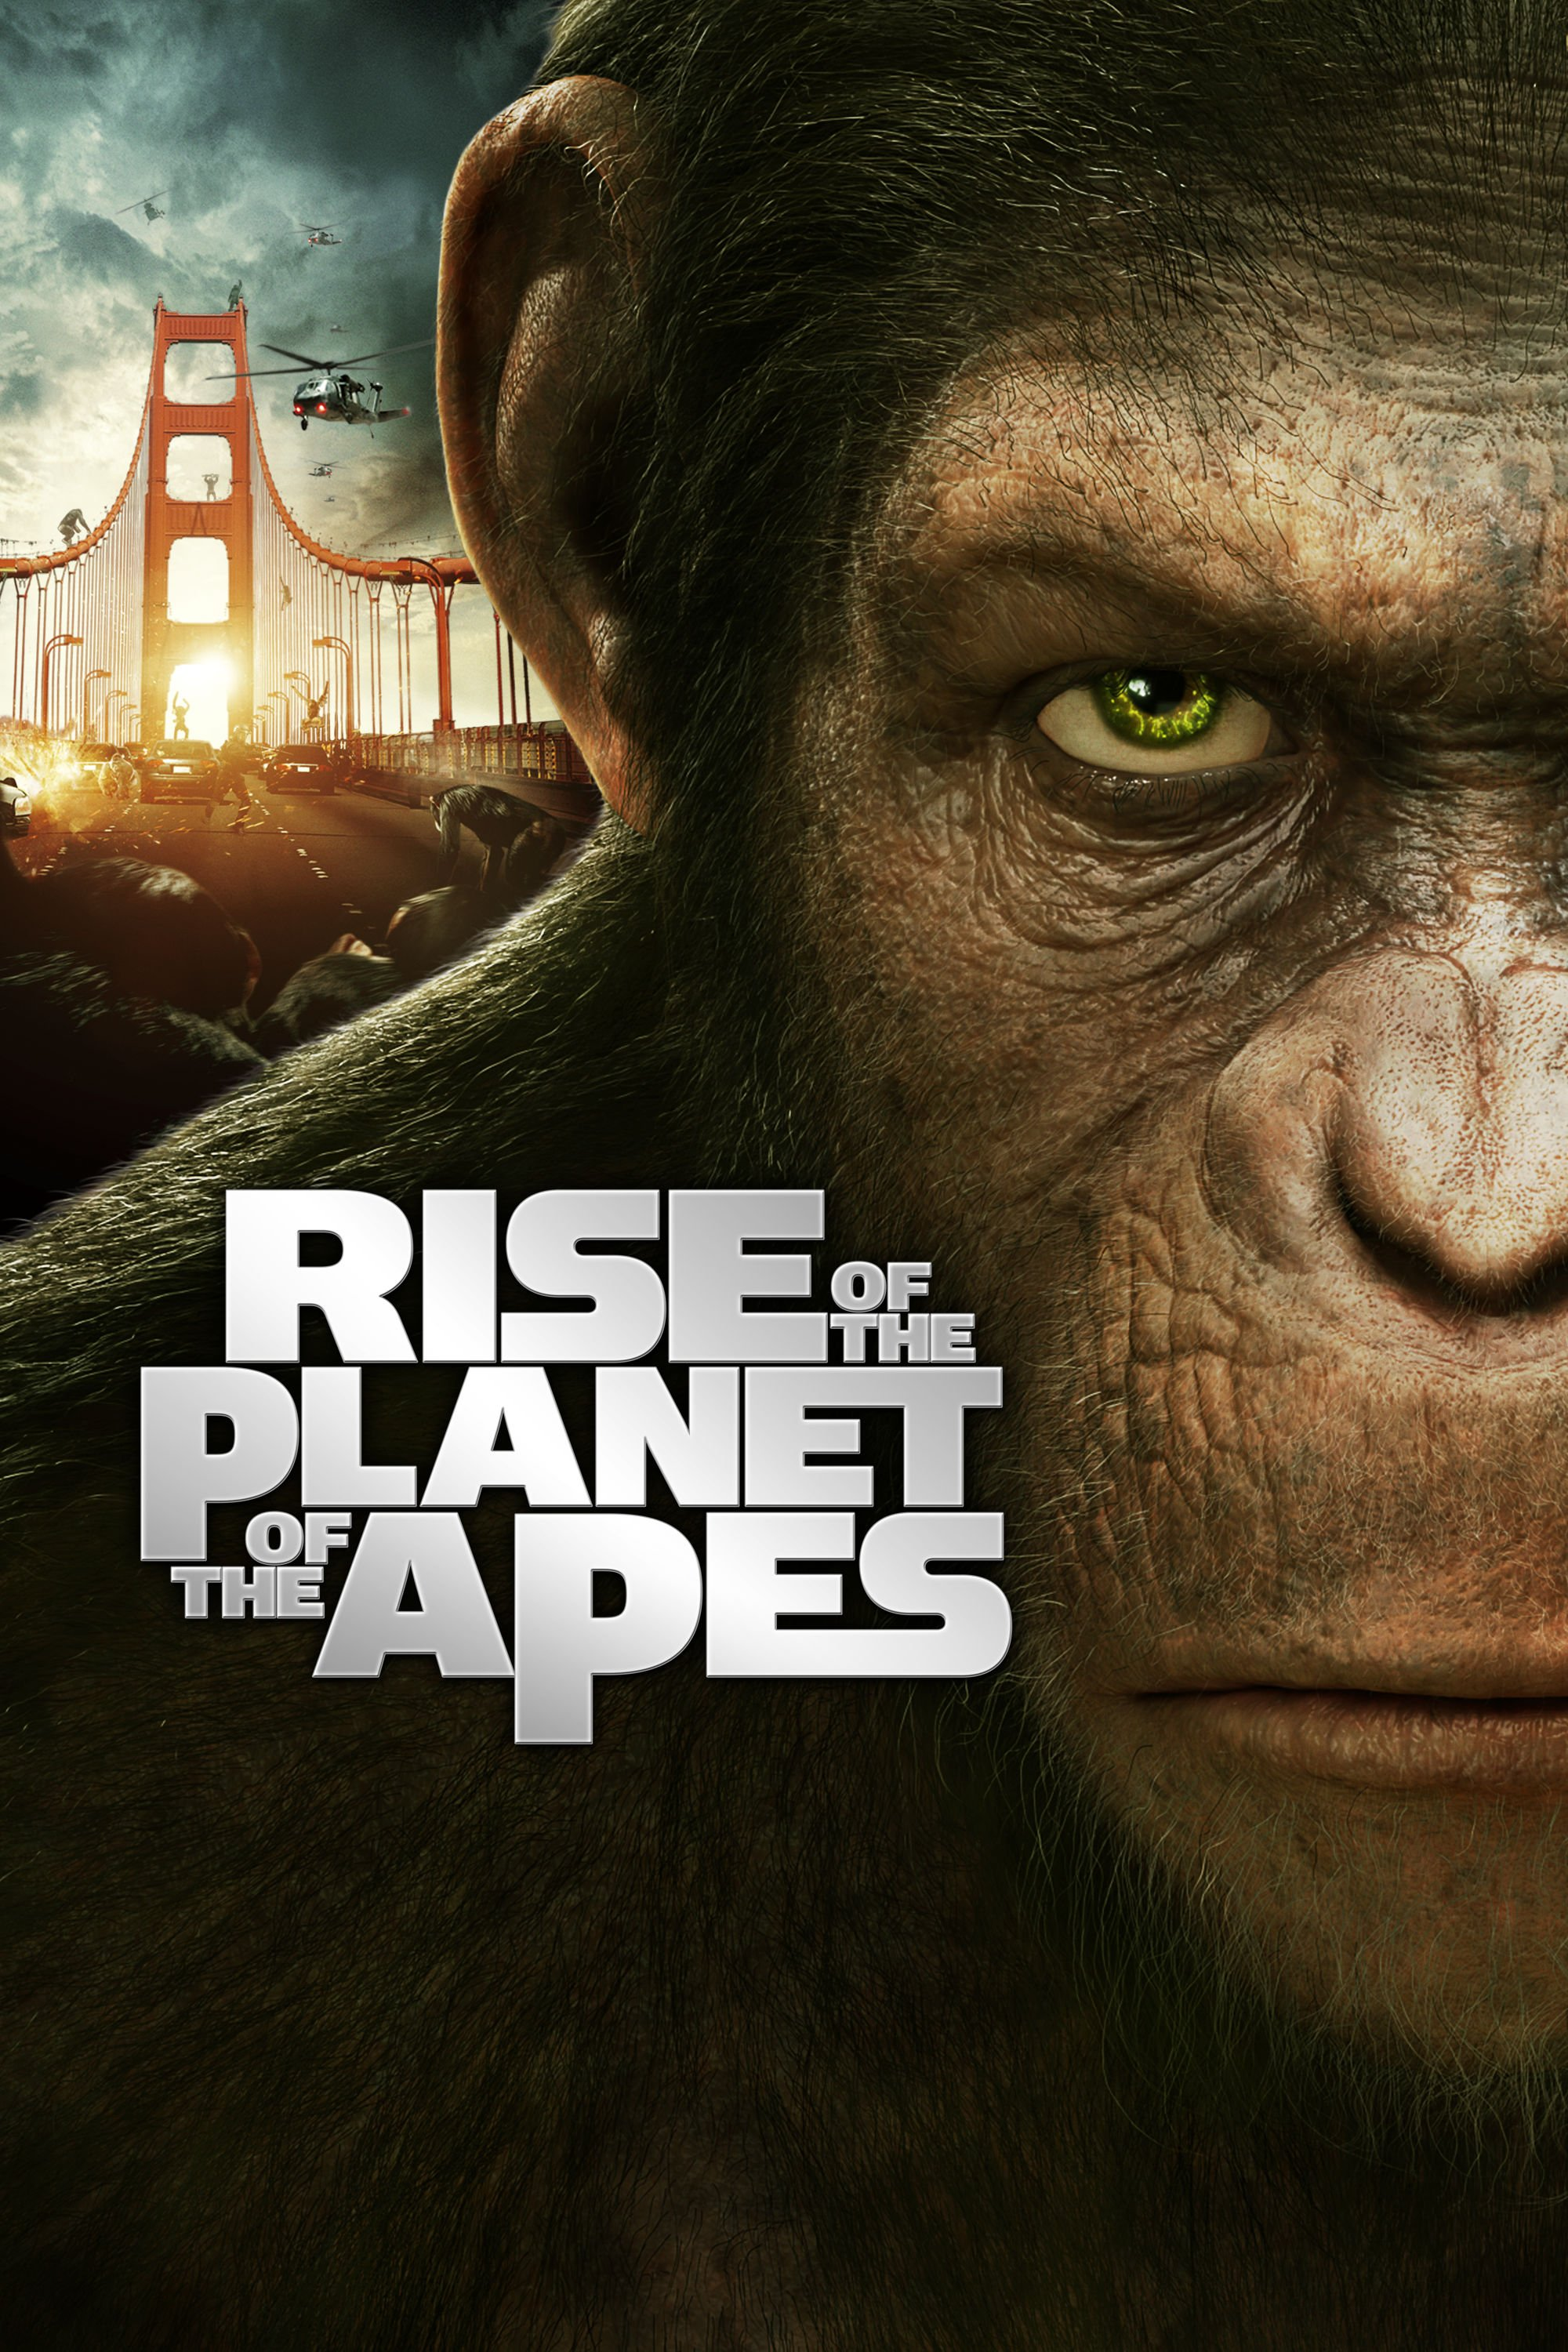 rise-of-the-planet-of-the-apes-filming-locations-itunes-poster